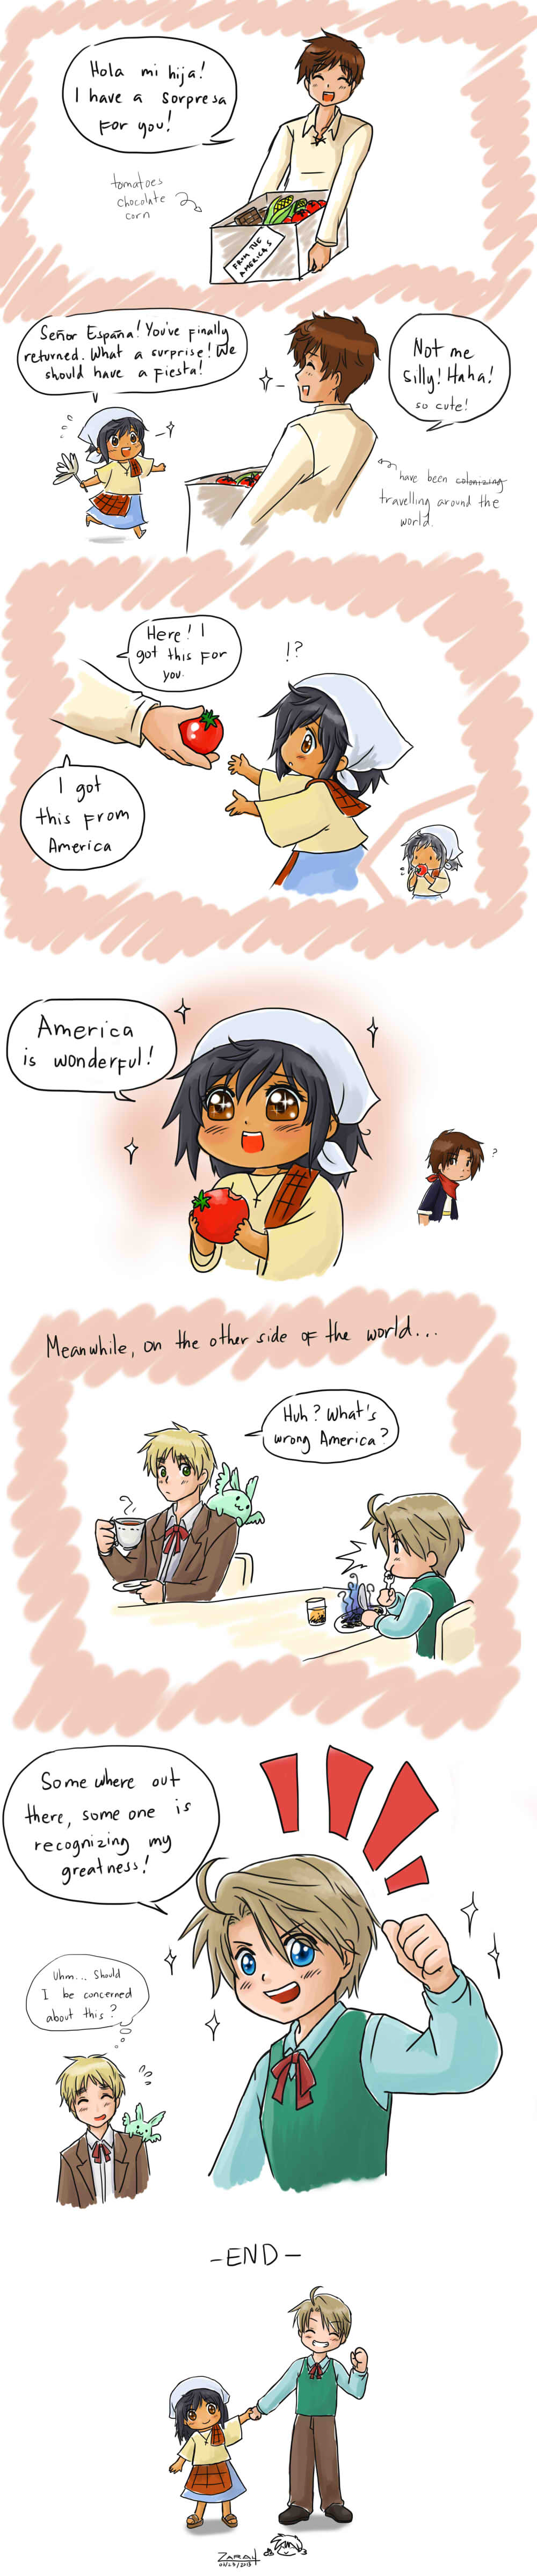 Gifts from America by randomsketchez.deviantart.com on @deviantART Piri, Spain, Mexico, England, and Colonial!America  - Cute!